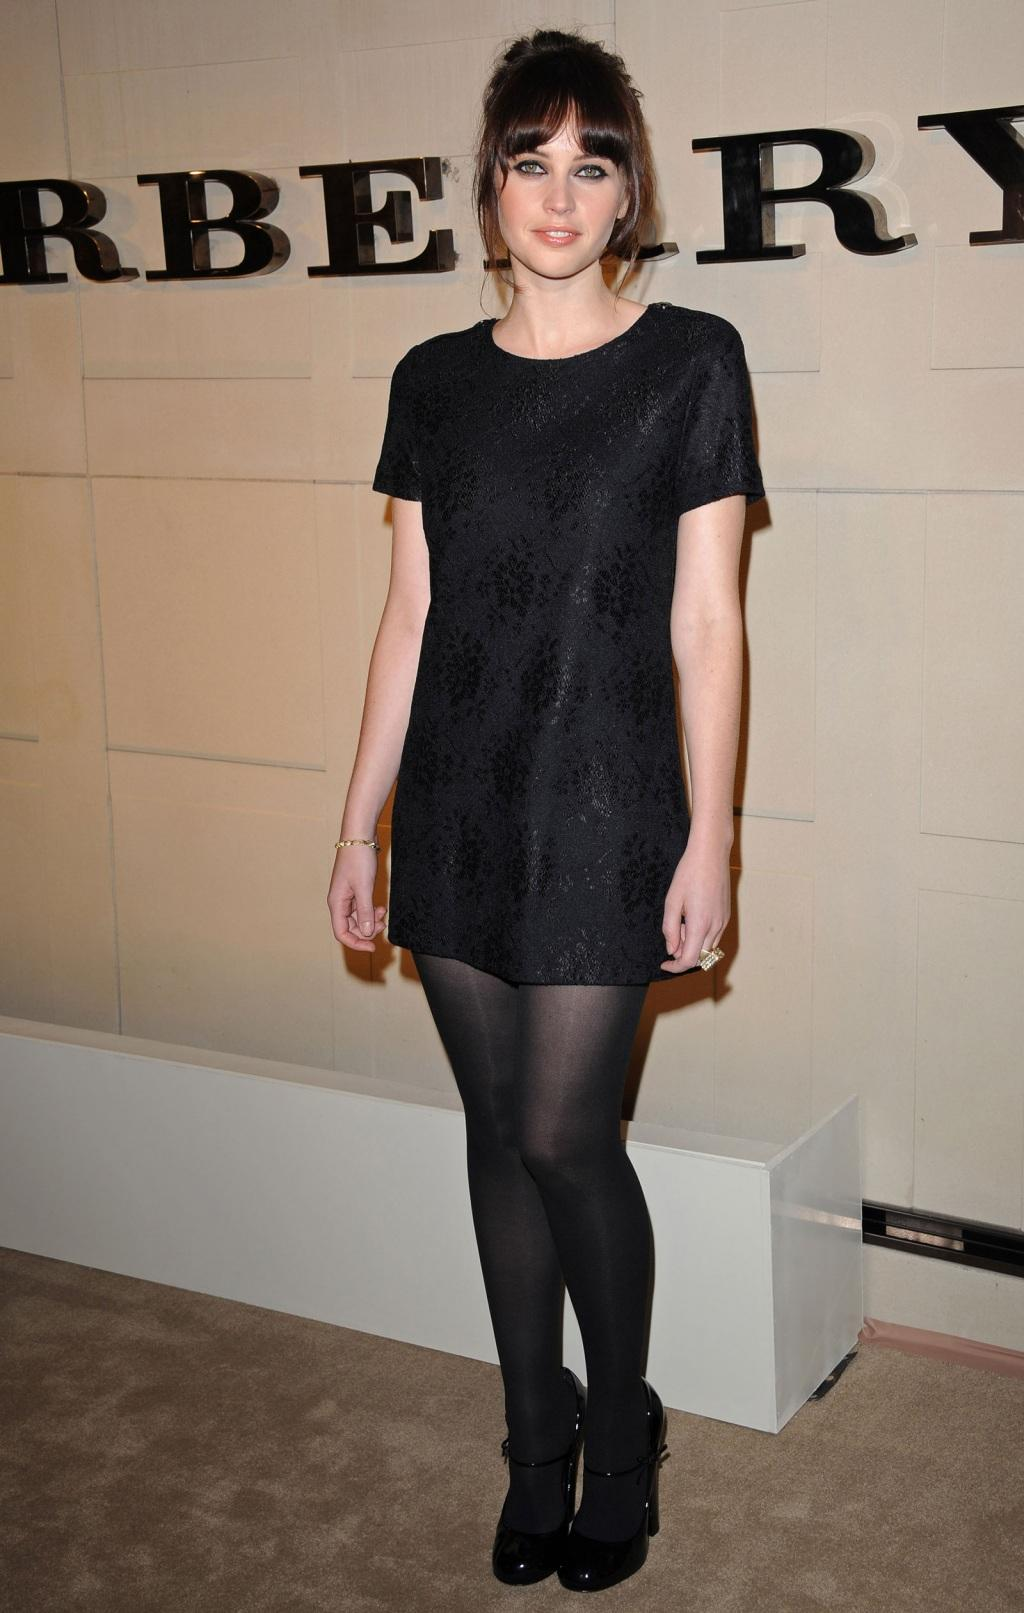 felicity-jones-at-burberry-body-fragrance-launch-in-los-angeles-hot-9c14e7a660000edd280005fedf9fec5c-large-164813.jpg